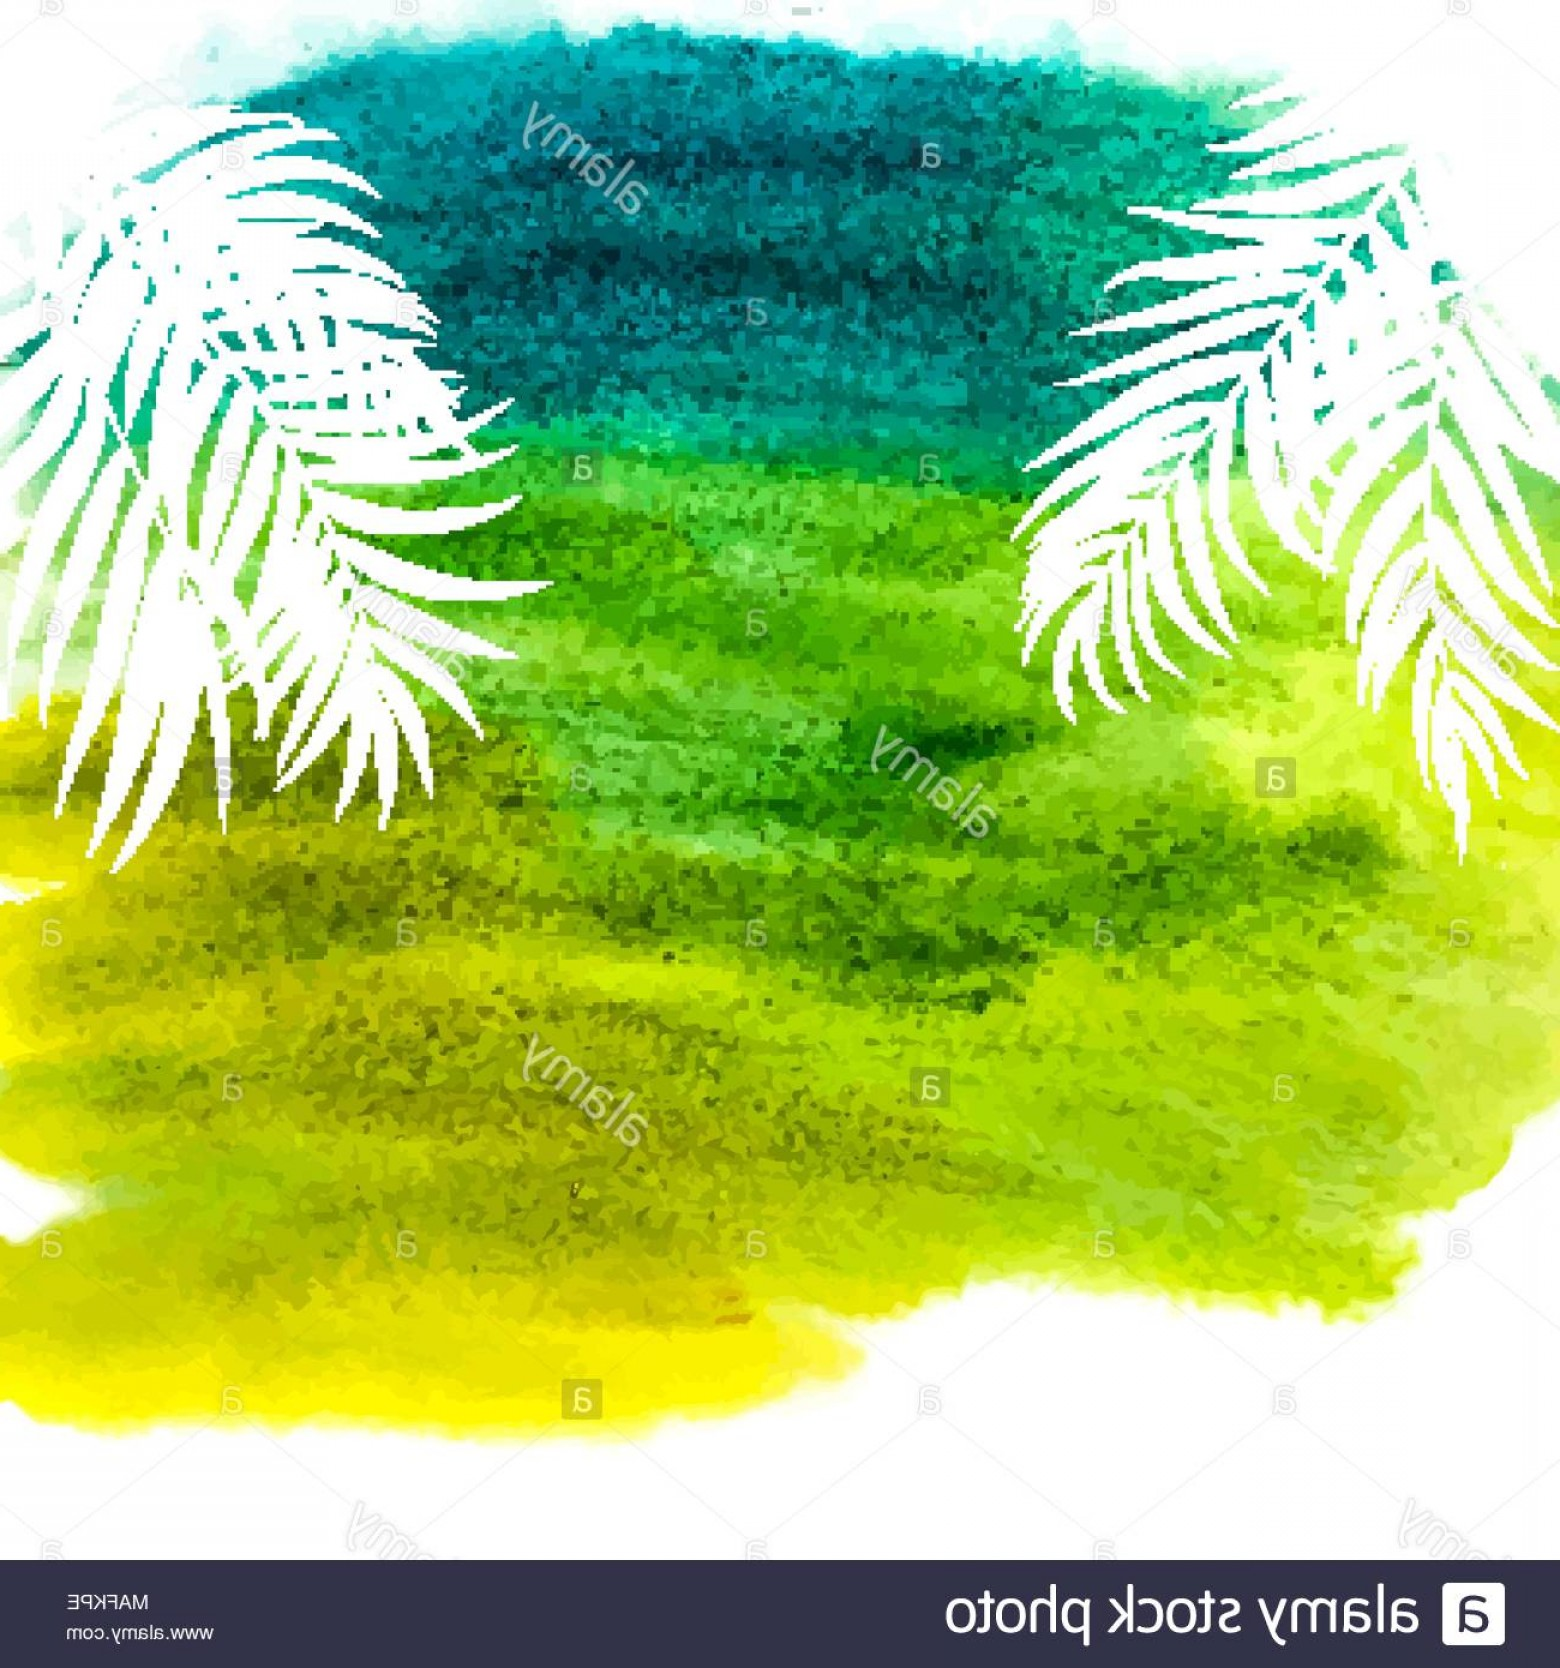 Watercolor Palm Tree Vector: Beautifil Palm Tree Leaf Silhouette With Aquarelle Watercolor Paint Background Vector Illustration Image